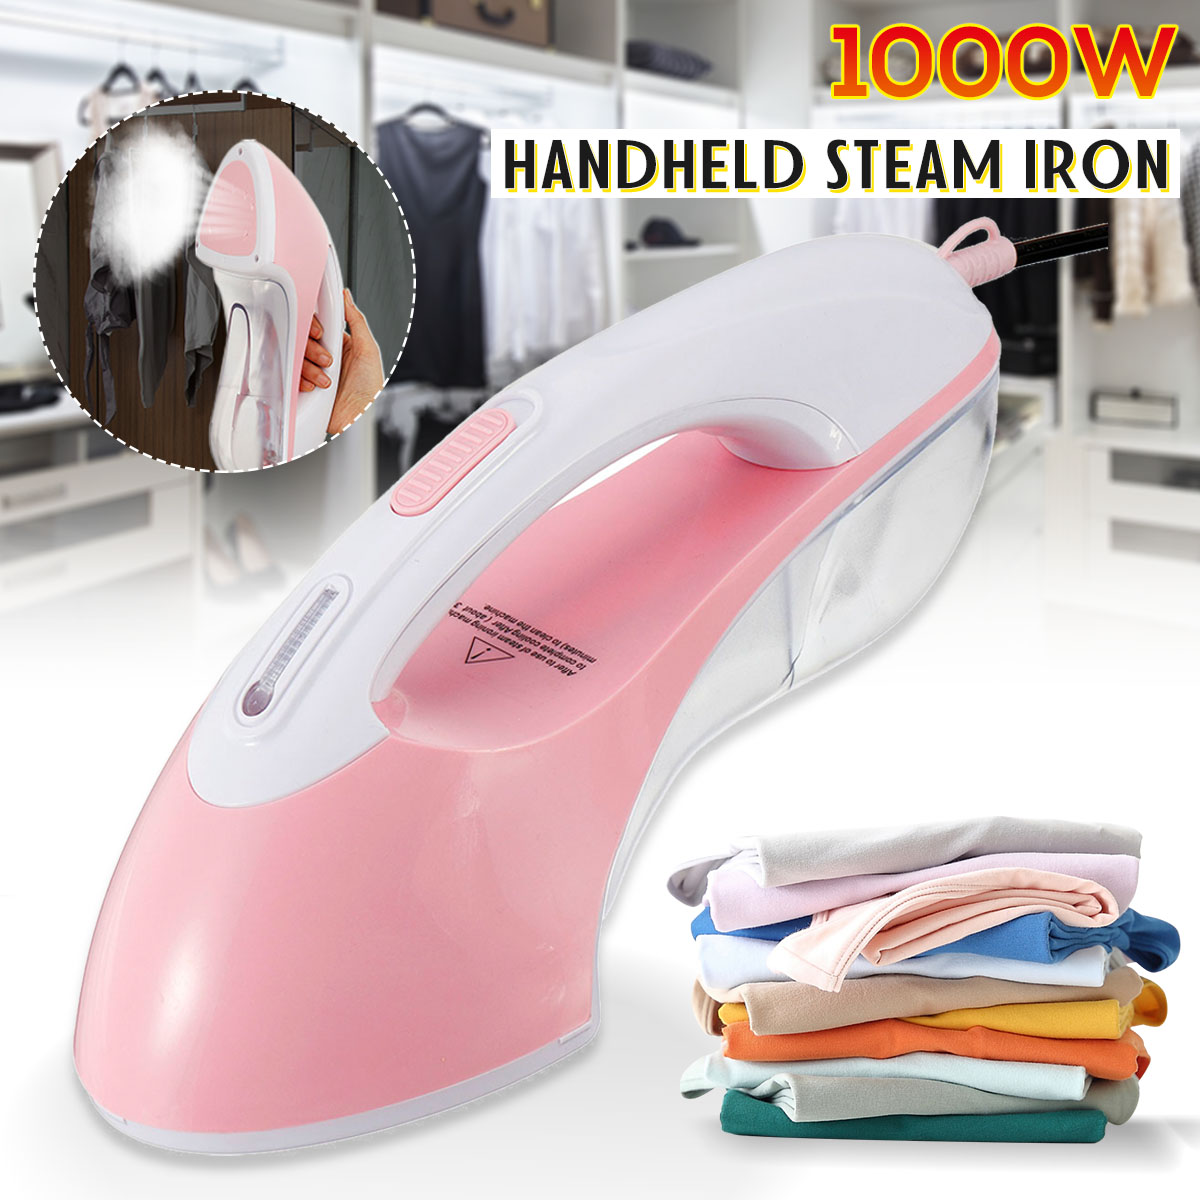 110V 1000W Handheld Electric Steam Iron Fabric Clothes Garment Steamer Dry Flat